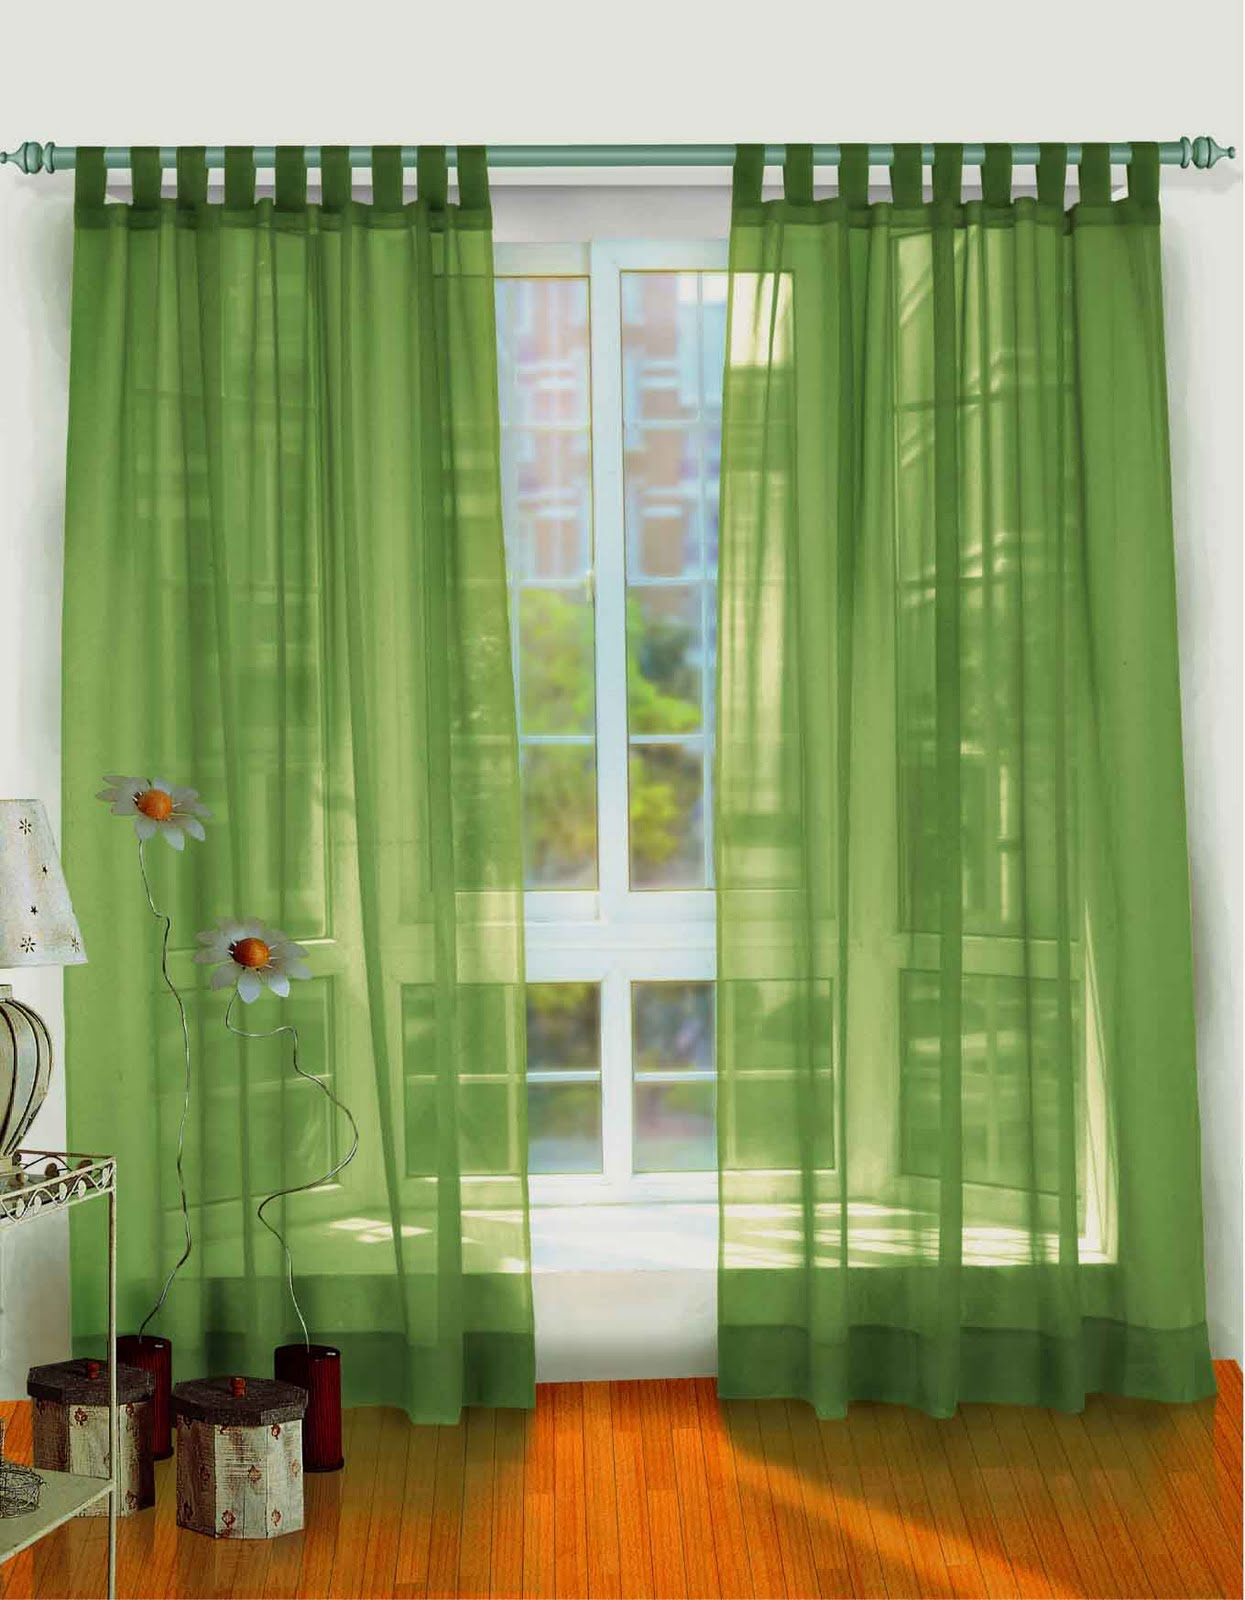 modern furniture living room curtains ideas 2011. Black Bedroom Furniture Sets. Home Design Ideas